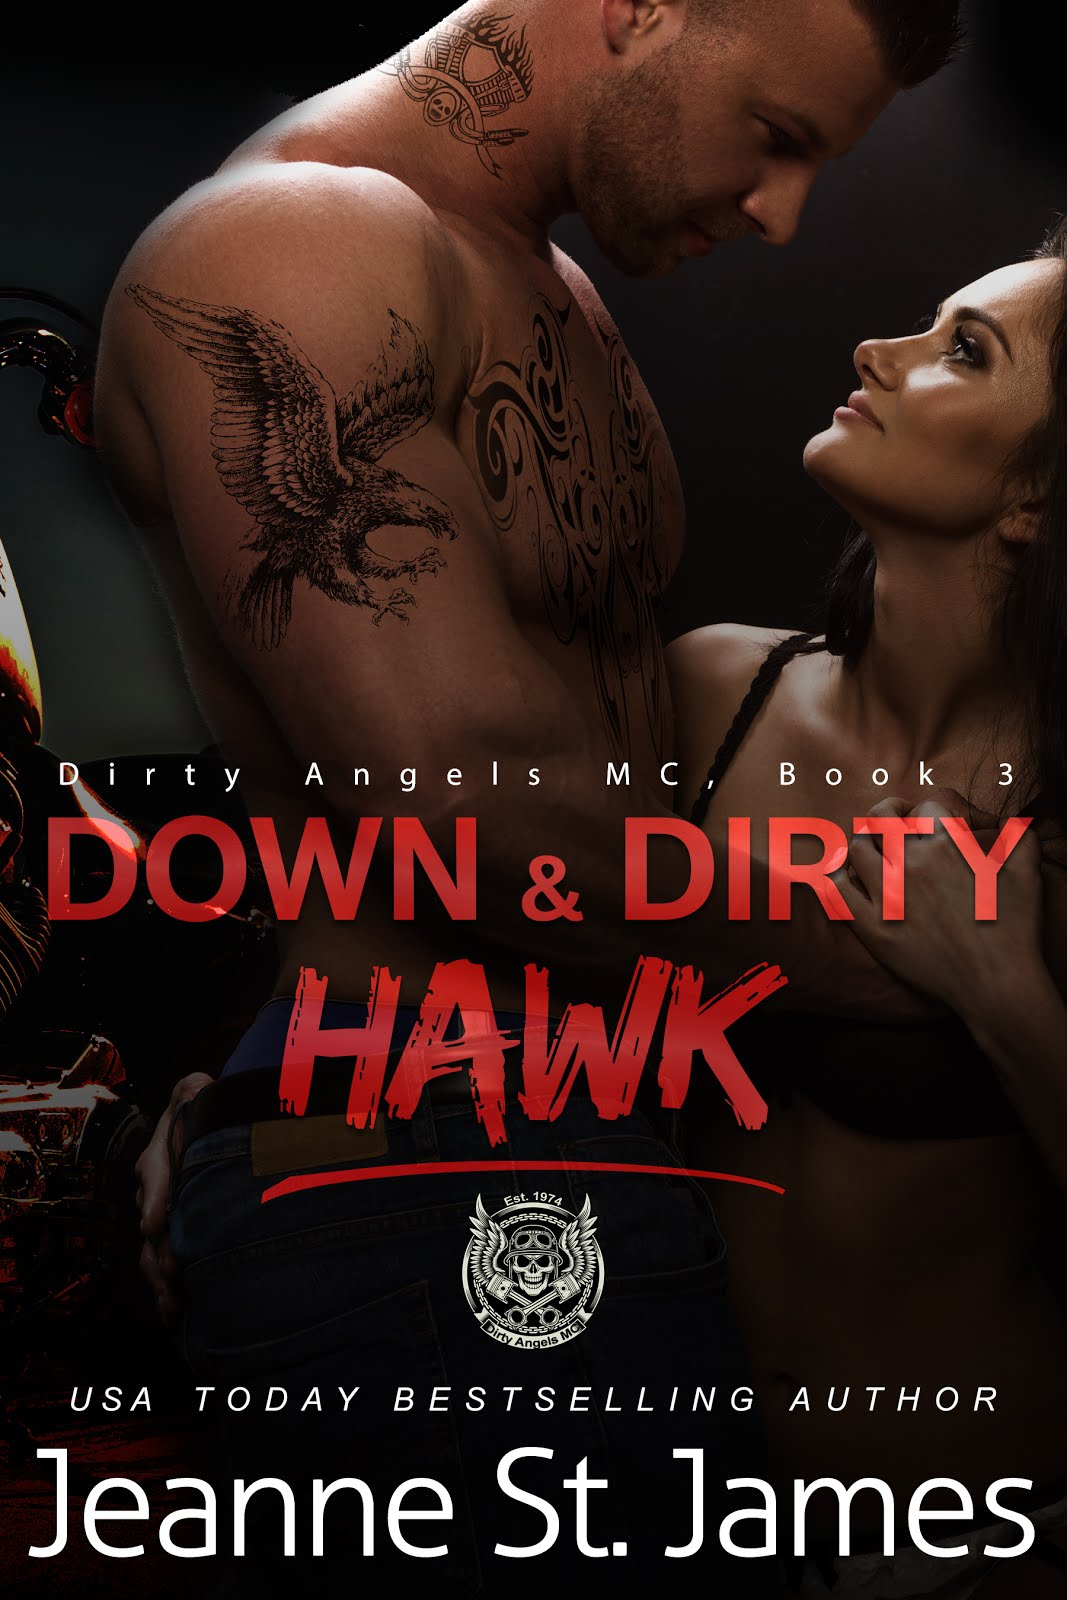 Down & Dirty: Hawk